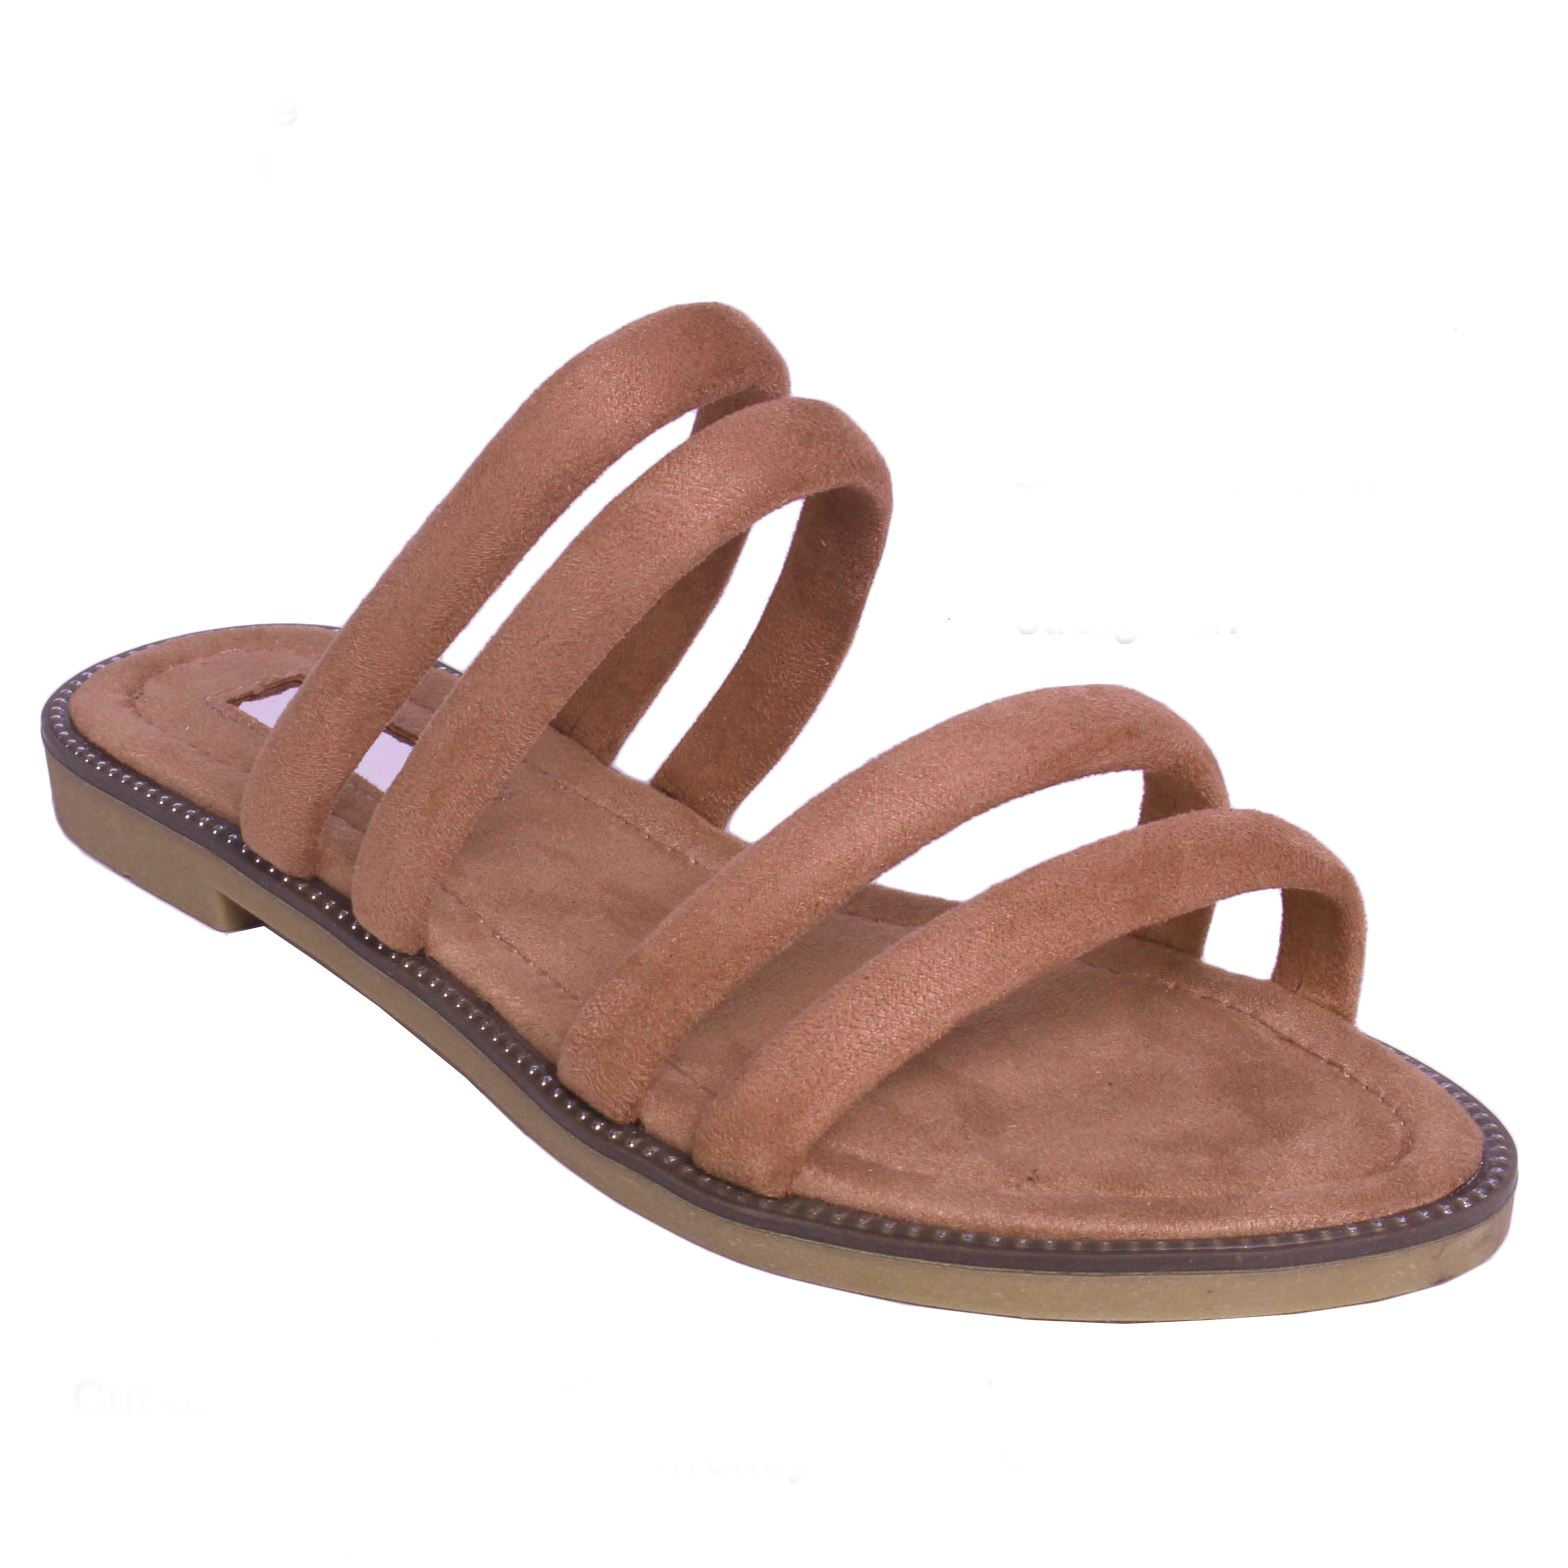 Womens-Ladies-Flat-Slip-On-Sandals-Strappy-Summer-Holiday-Slides-Mules-Shoe-SIze thumbnail 8